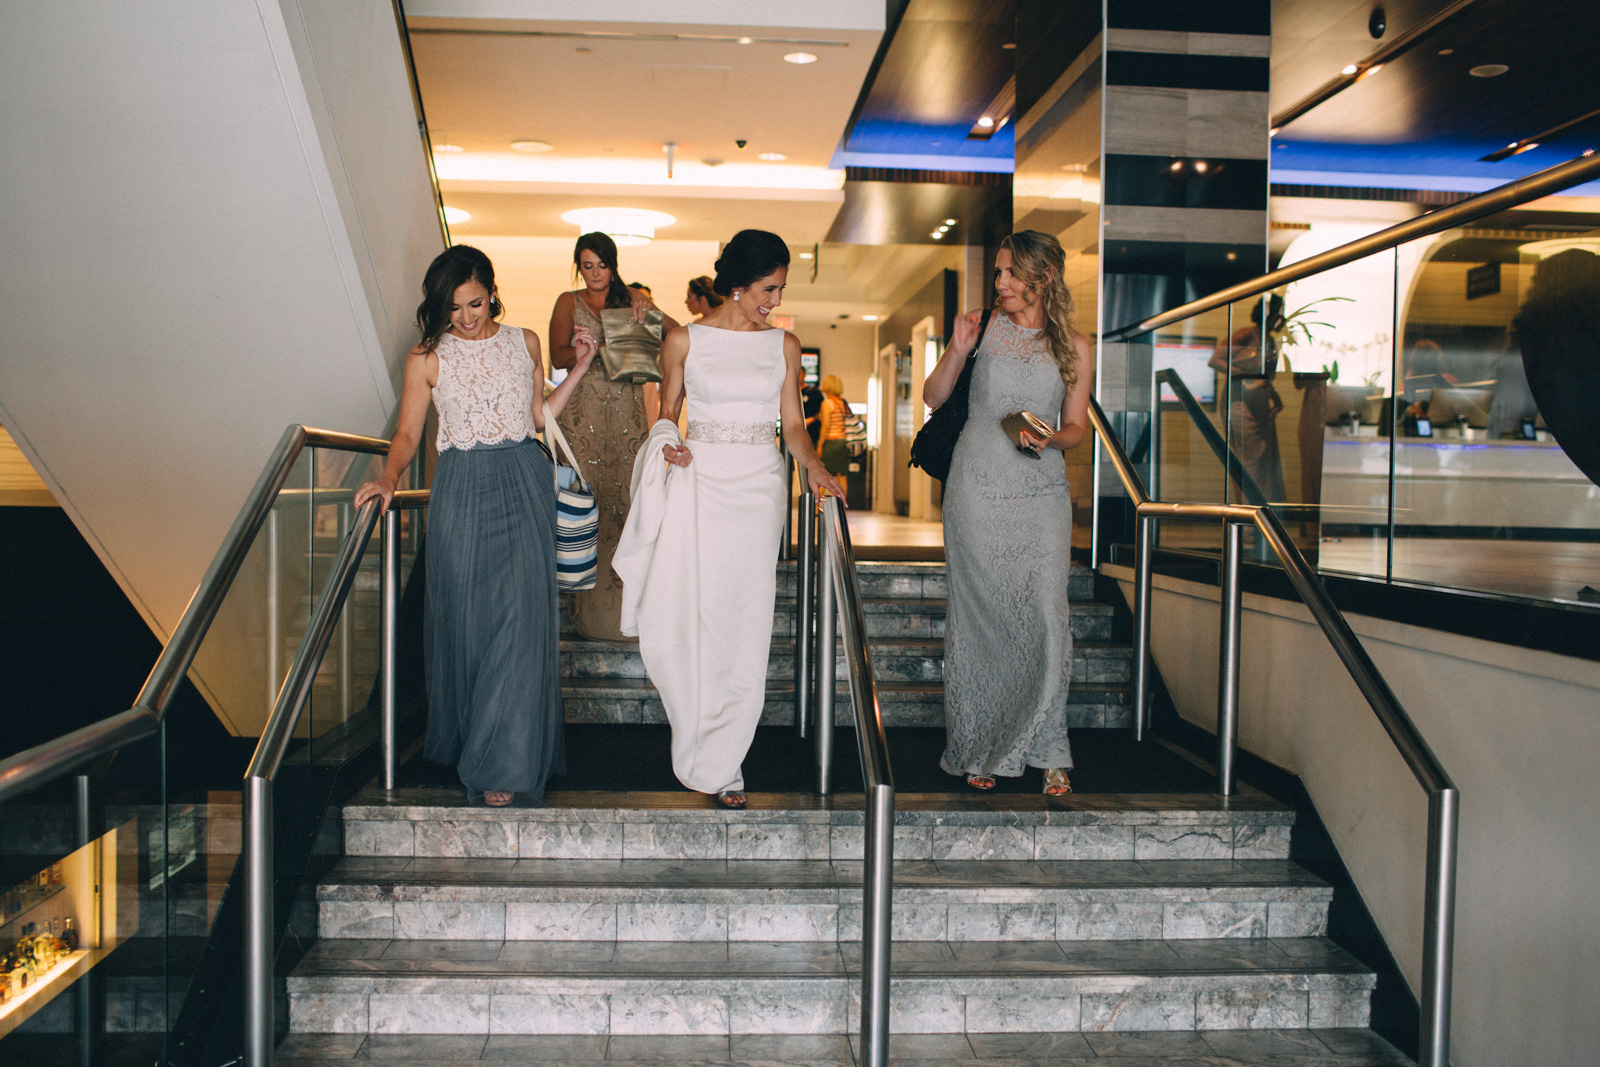 Malaparte-wedding-photography-Toronto-by-Sam-Wong-of-Artanis-Collective_22.jpg